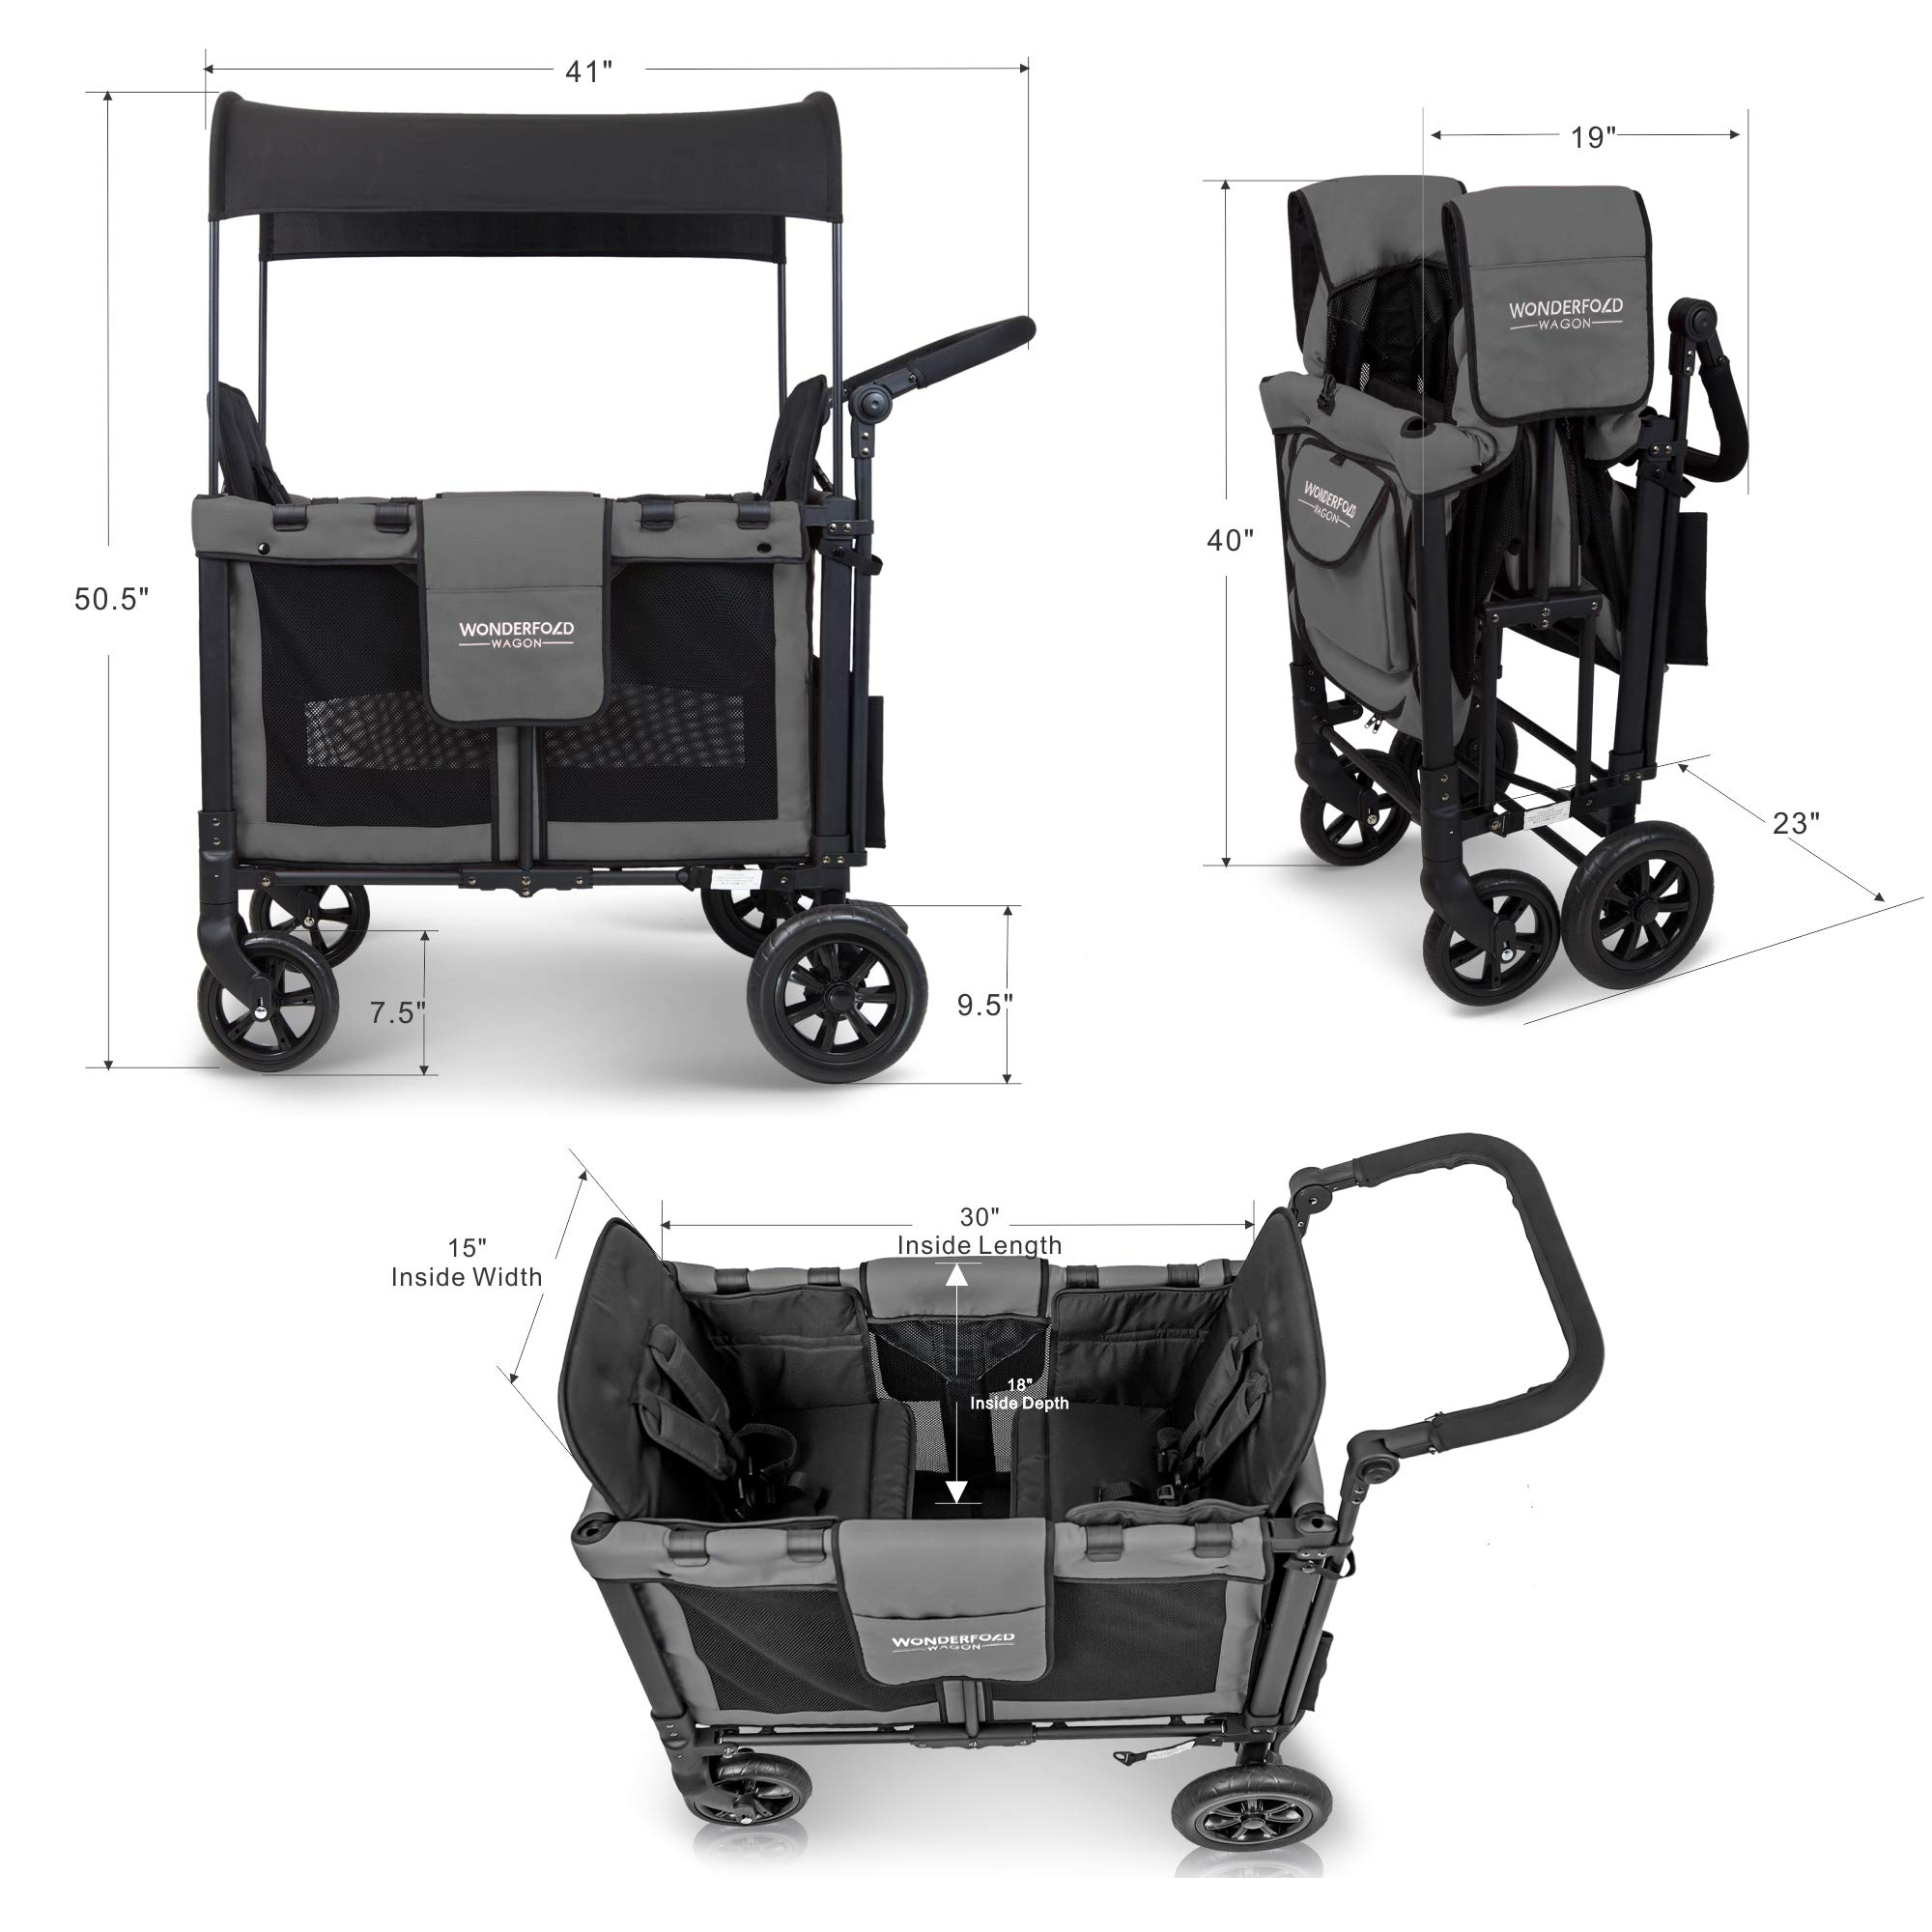 WonderFold Multi-Function Push 2 Passenger Double Folding Stroller, Adjustable Canopy & Removable Chair Seat Up To 2 Toddlers (Charcoal Gray) by WonderFold (Image #2)